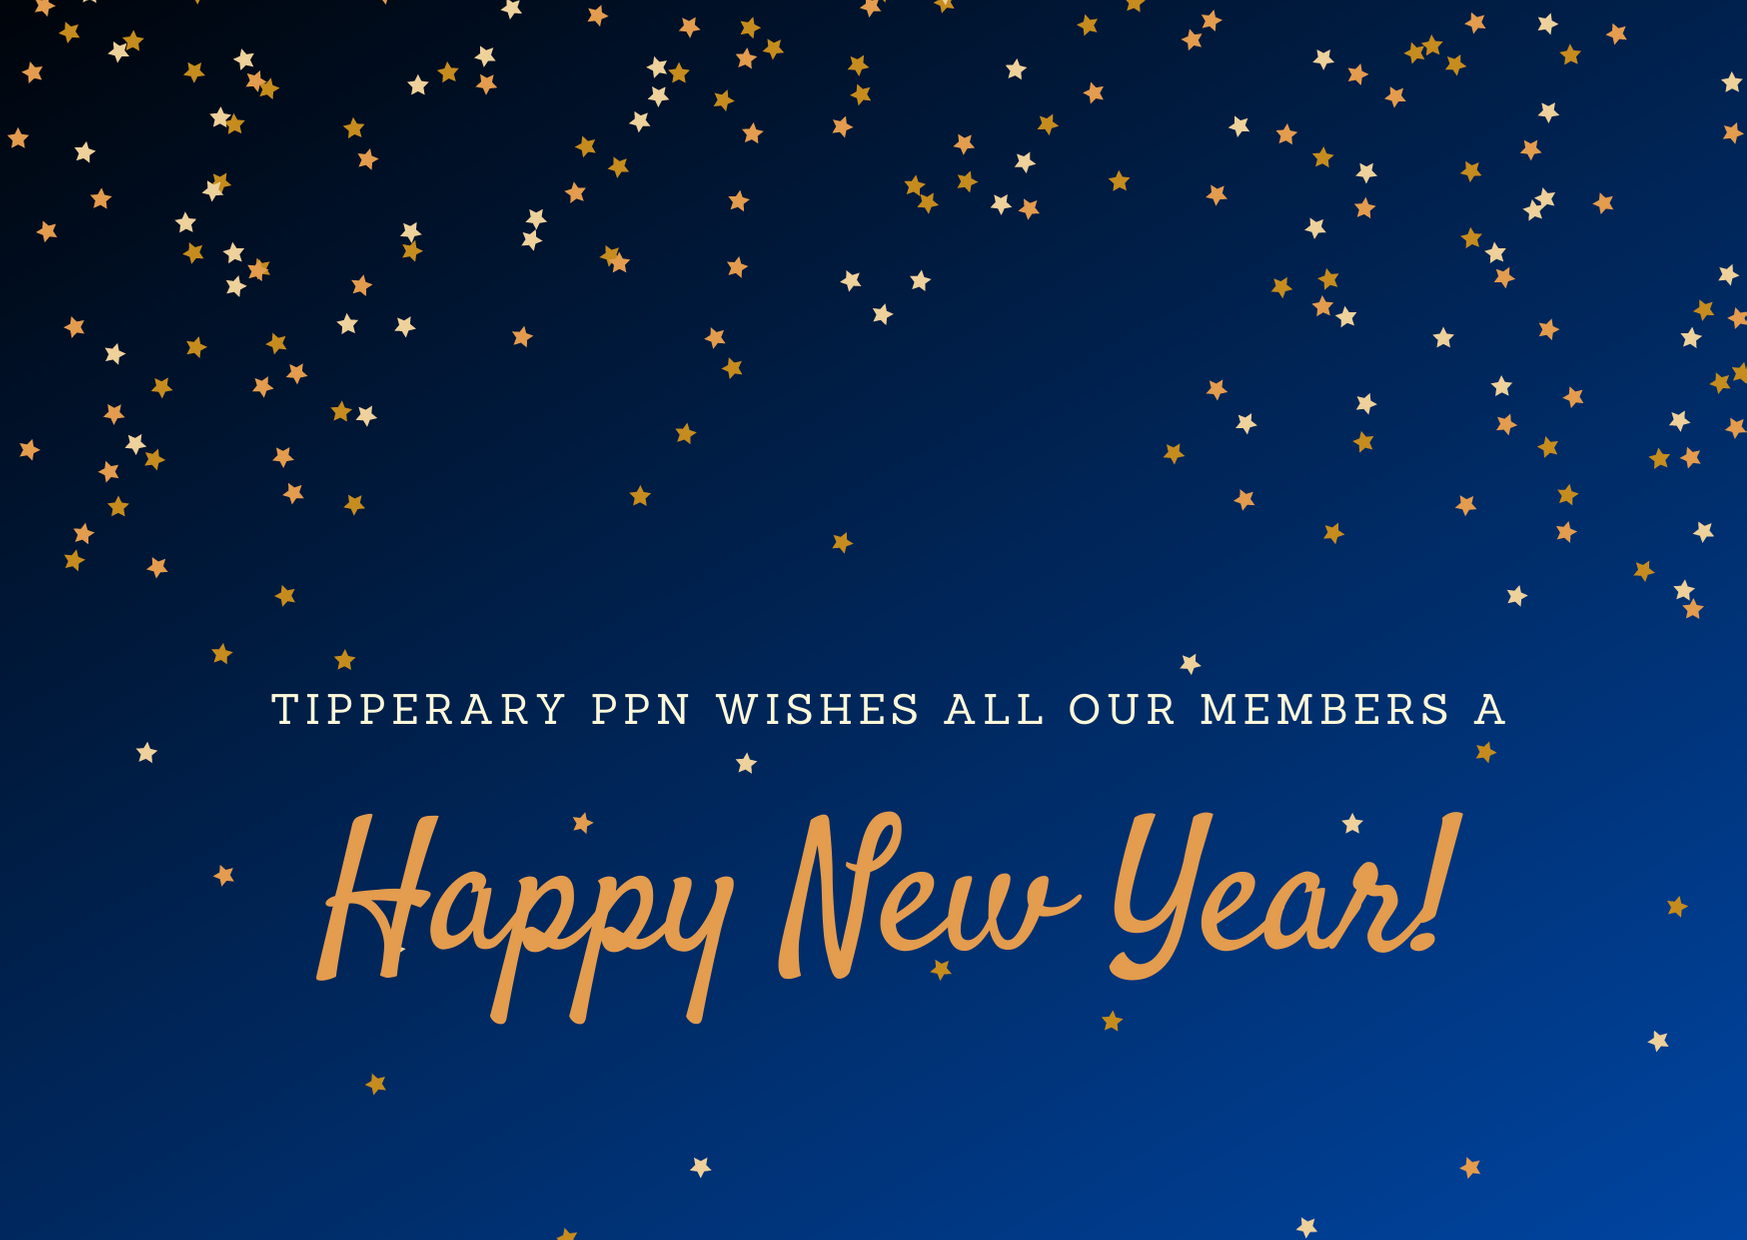 Happy new year to all our members